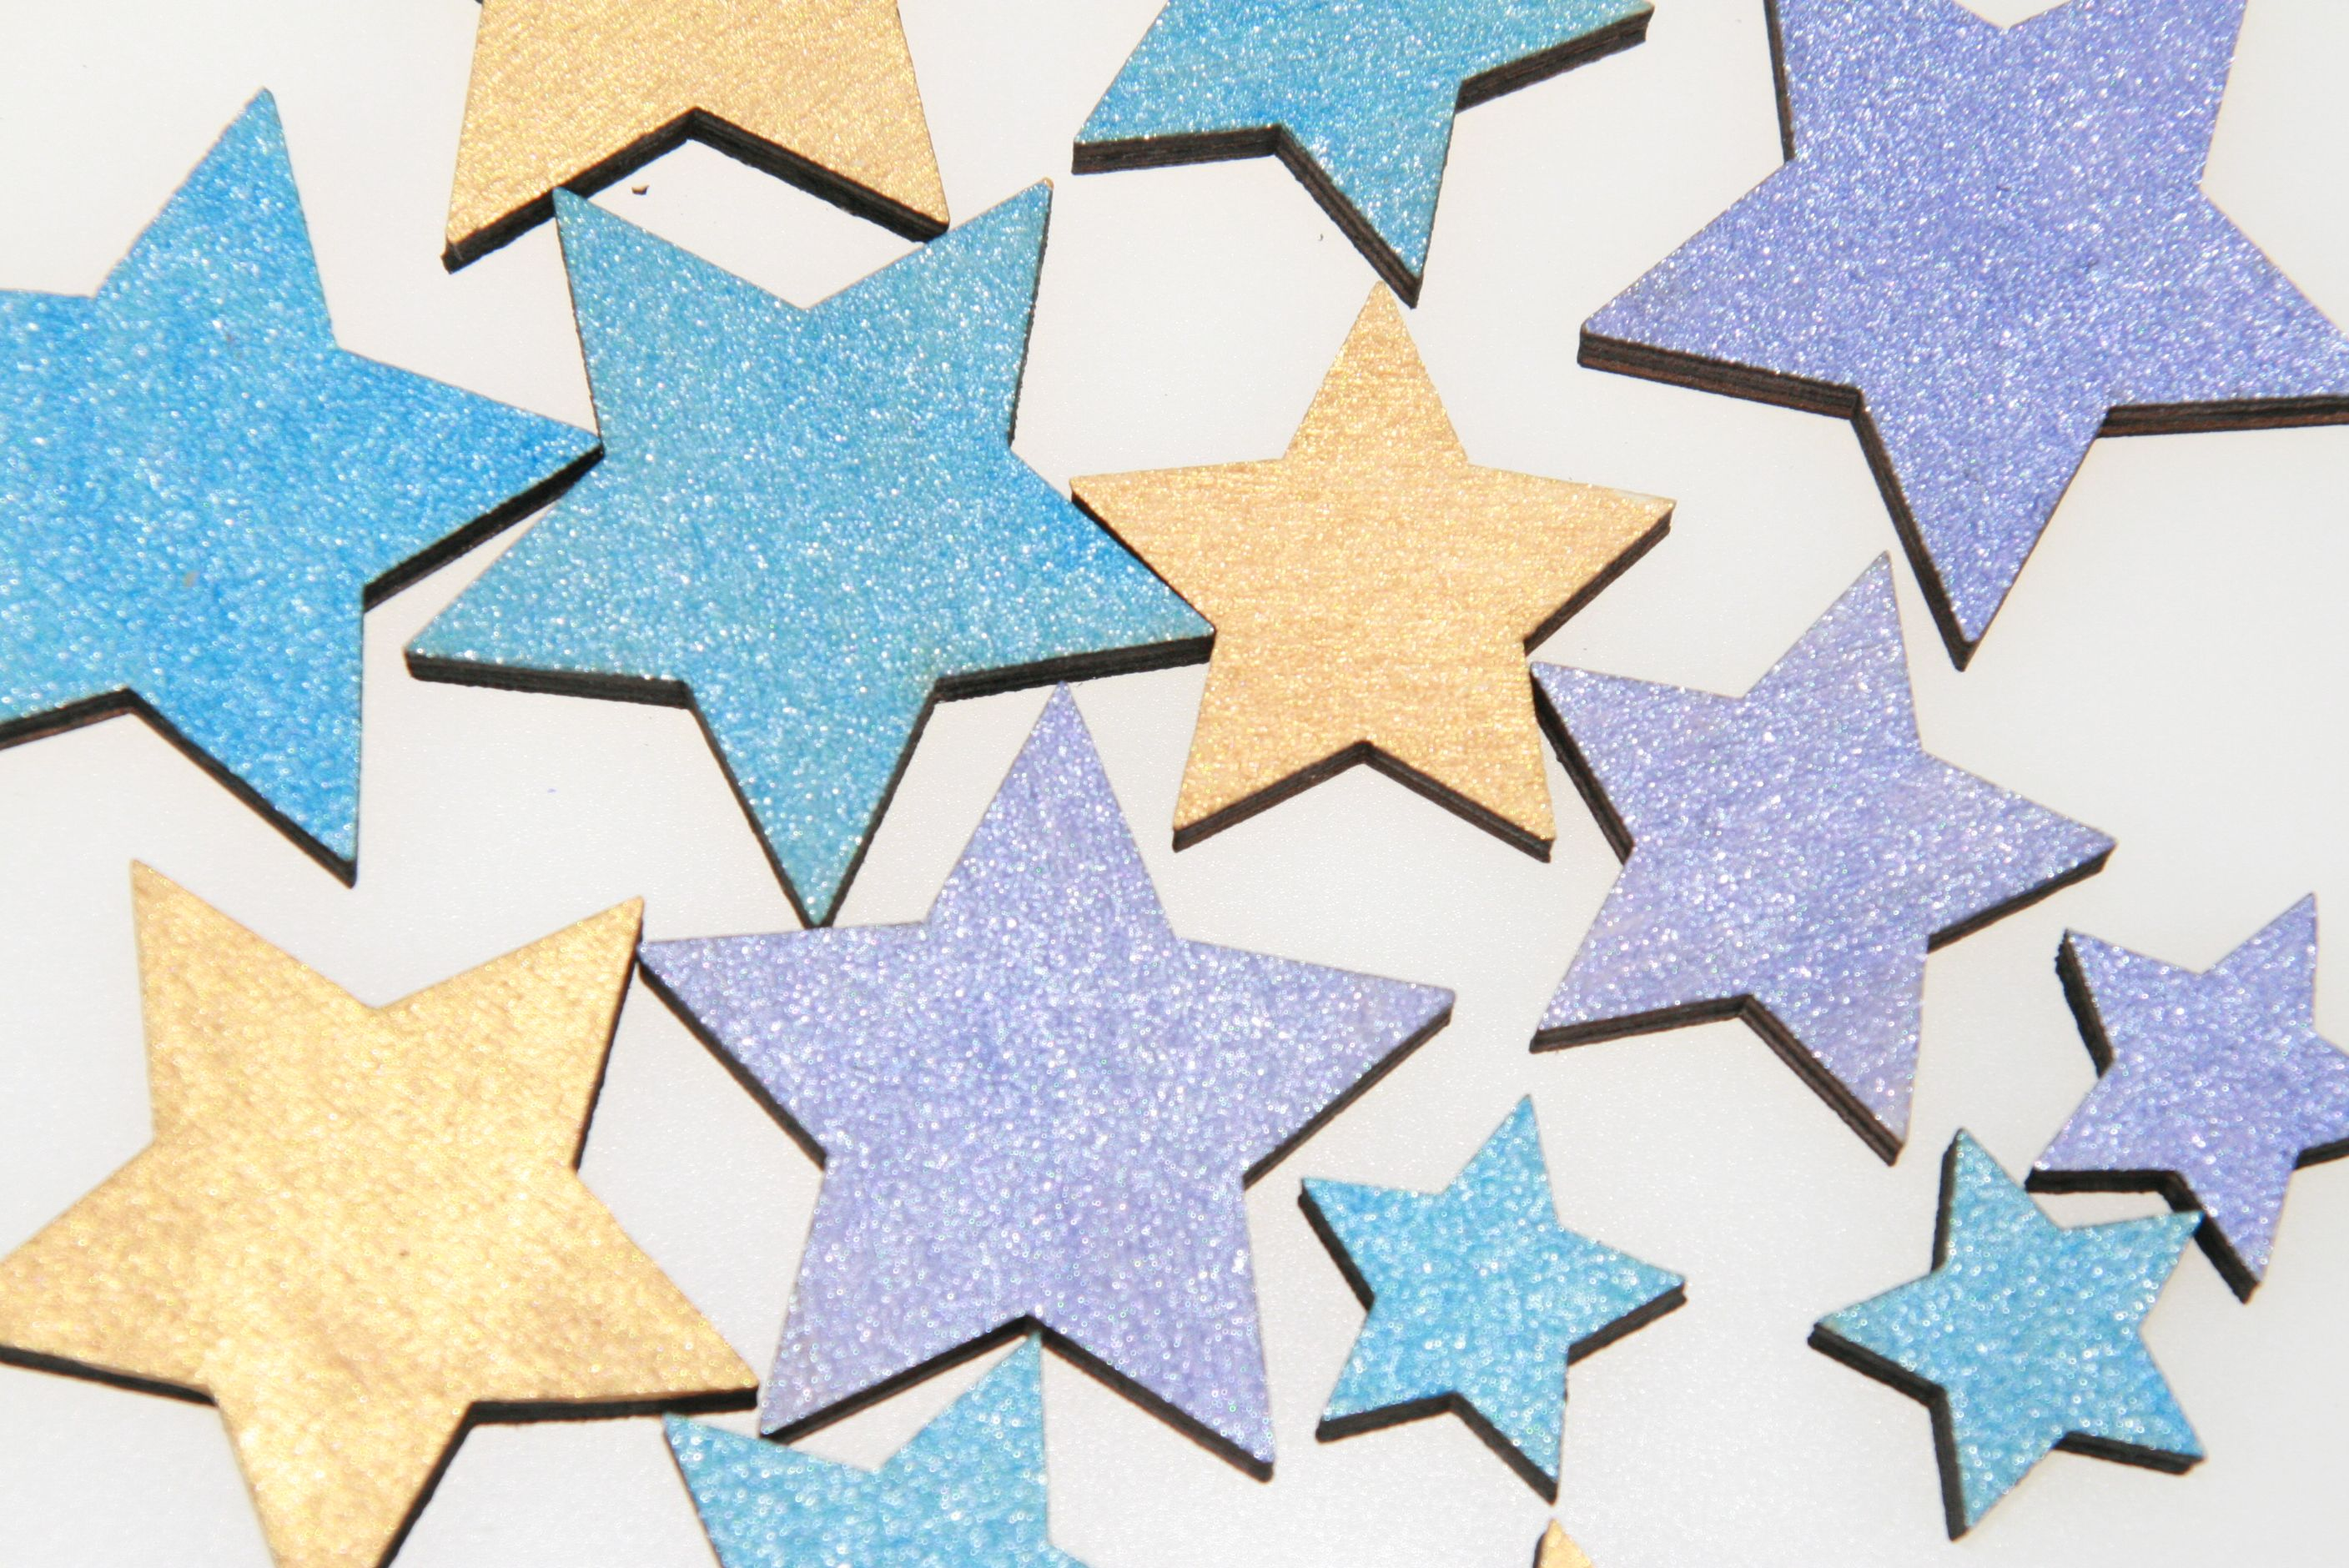 Painted wooden shapes for crafts - Craft Shape Basic Star Plain Standard Five Pointed We Manufacture Our Shapes In A Range Of Sizes And Materials Including Wooden Ply Mdf Acrylic Felt Fabric